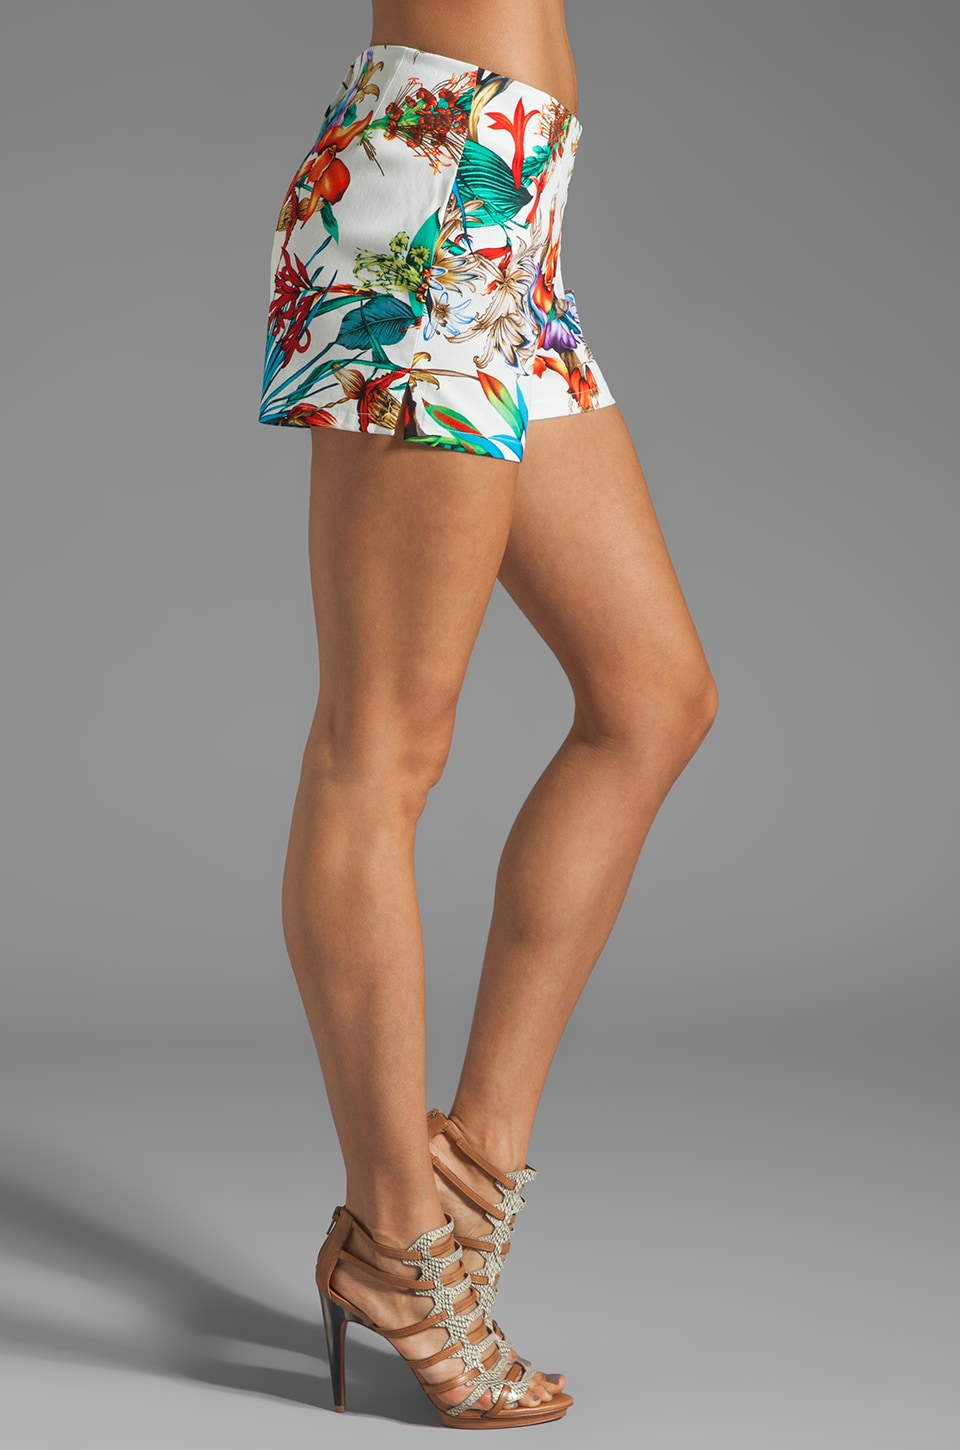 Backstage California Tropical Short in White Tropical